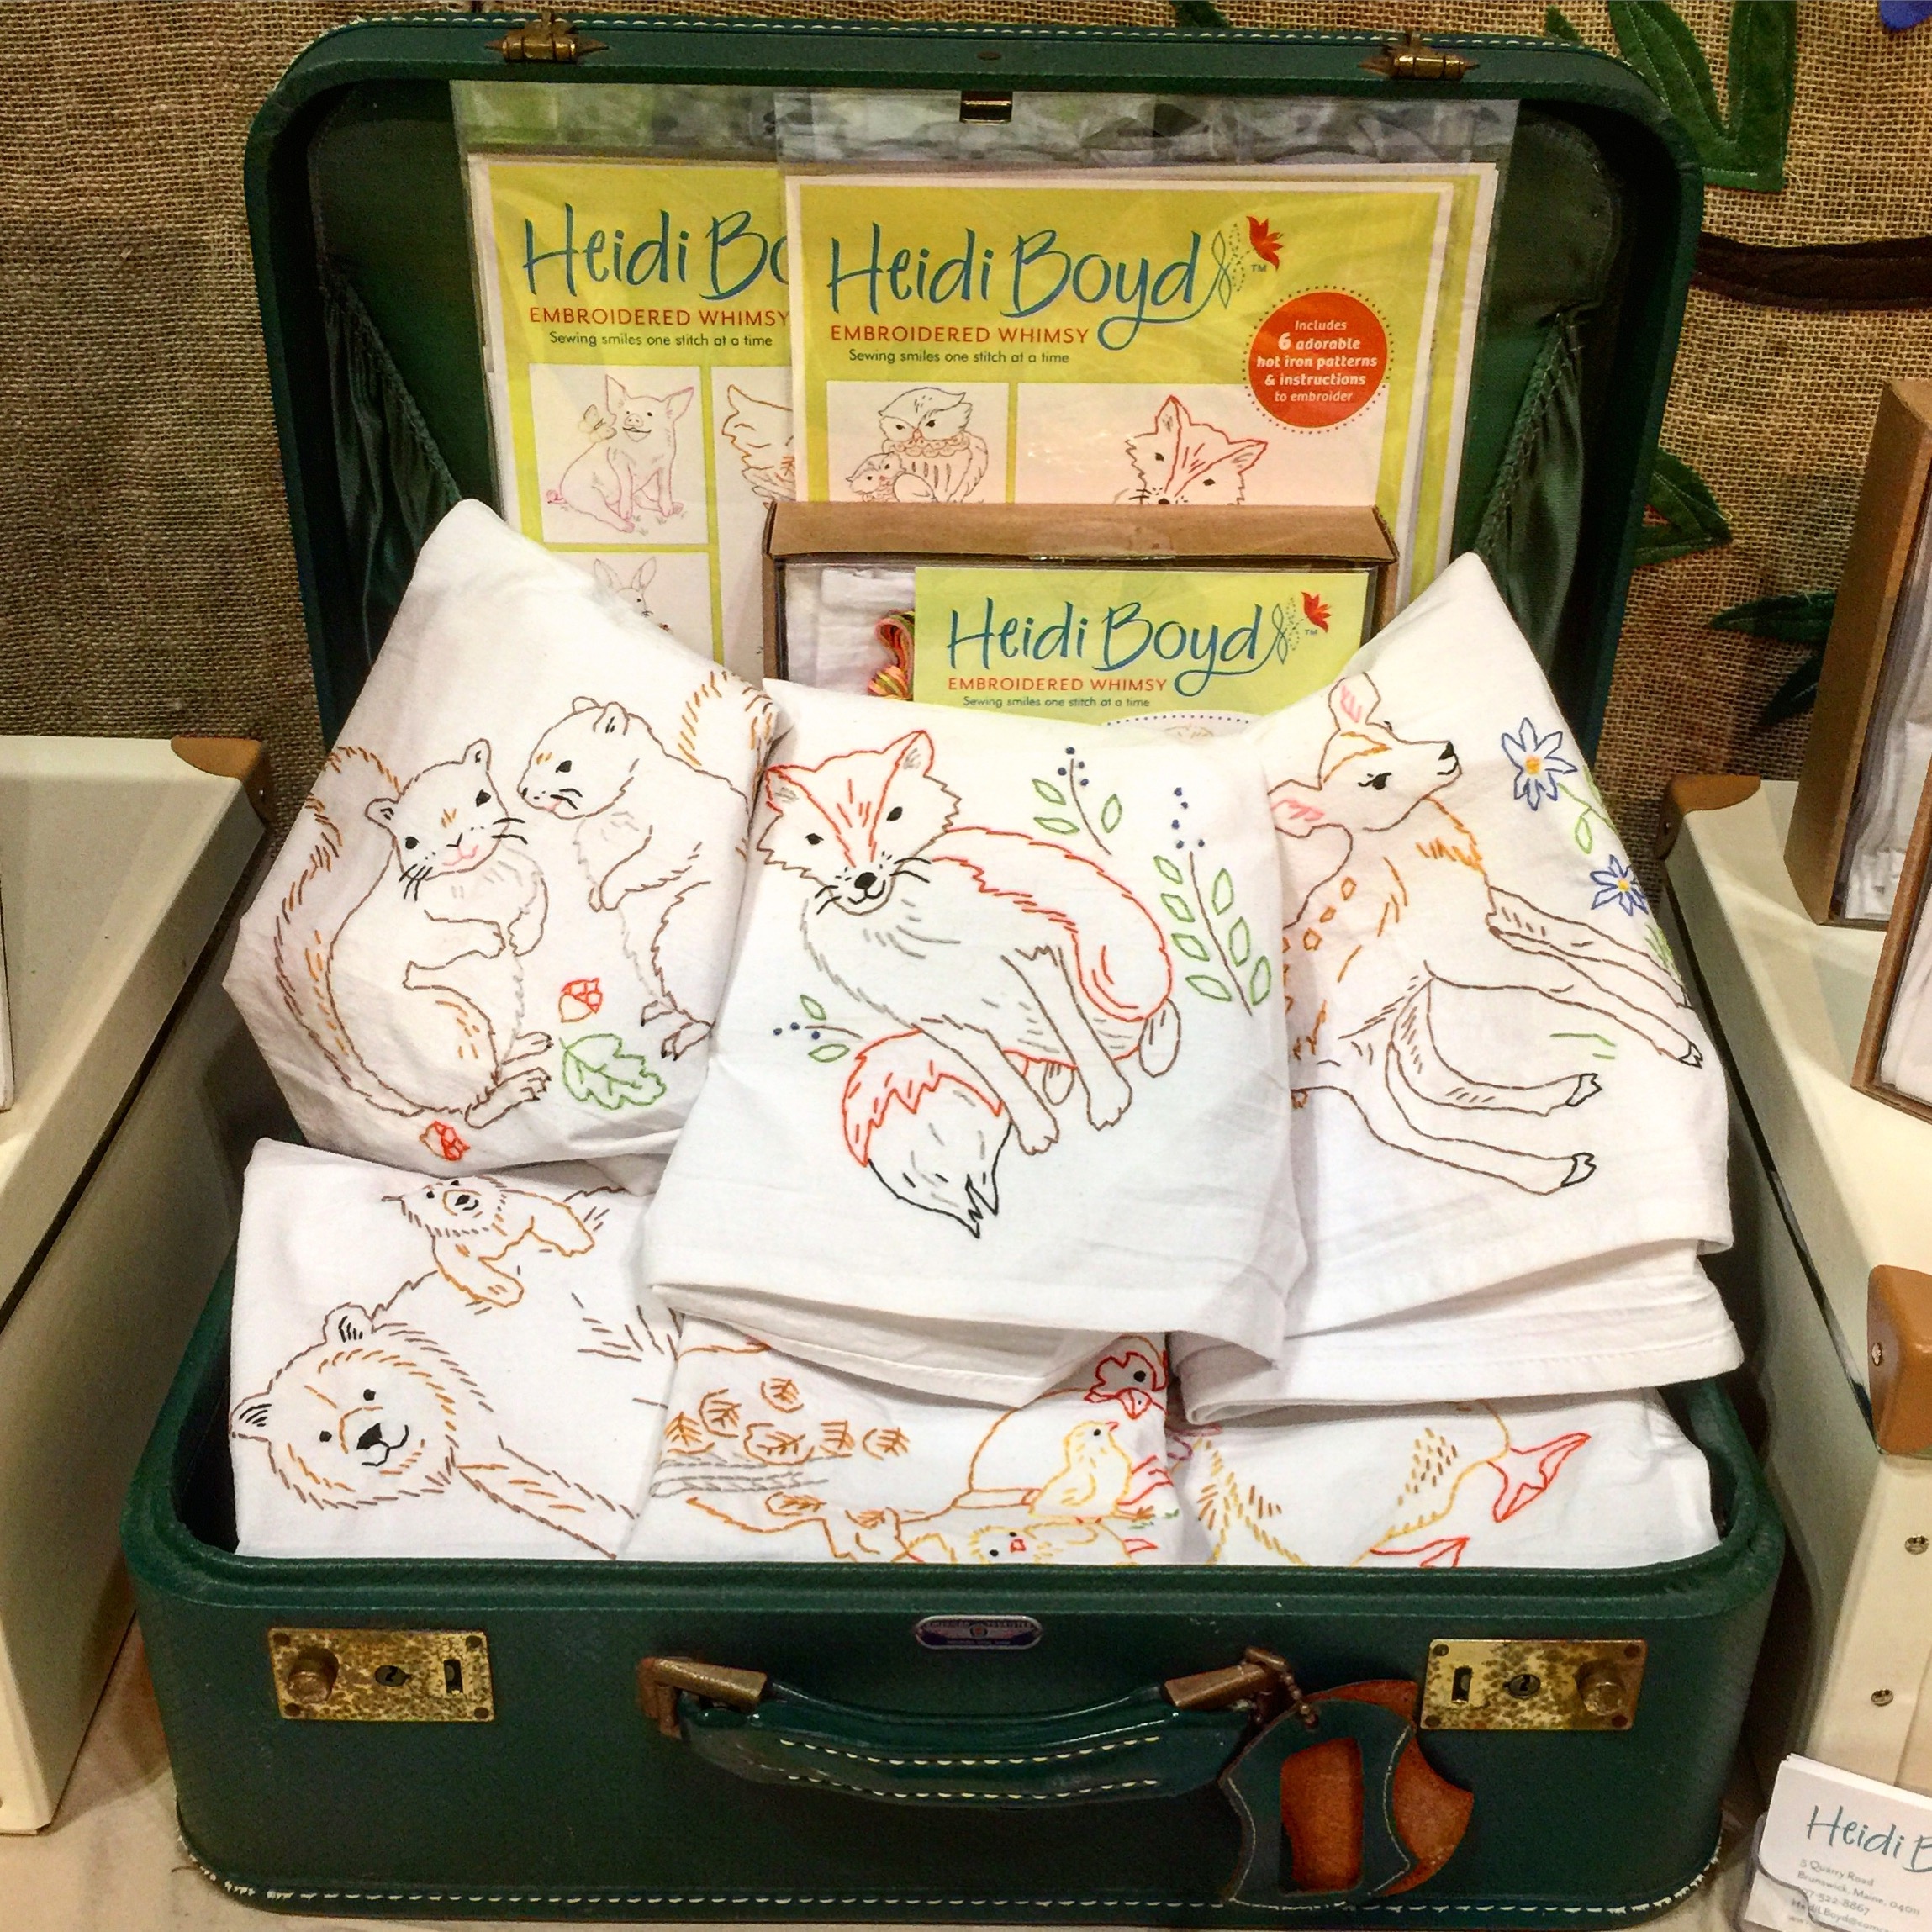 Finished Tea Towel Kits on display at National Stationary Show in NYC